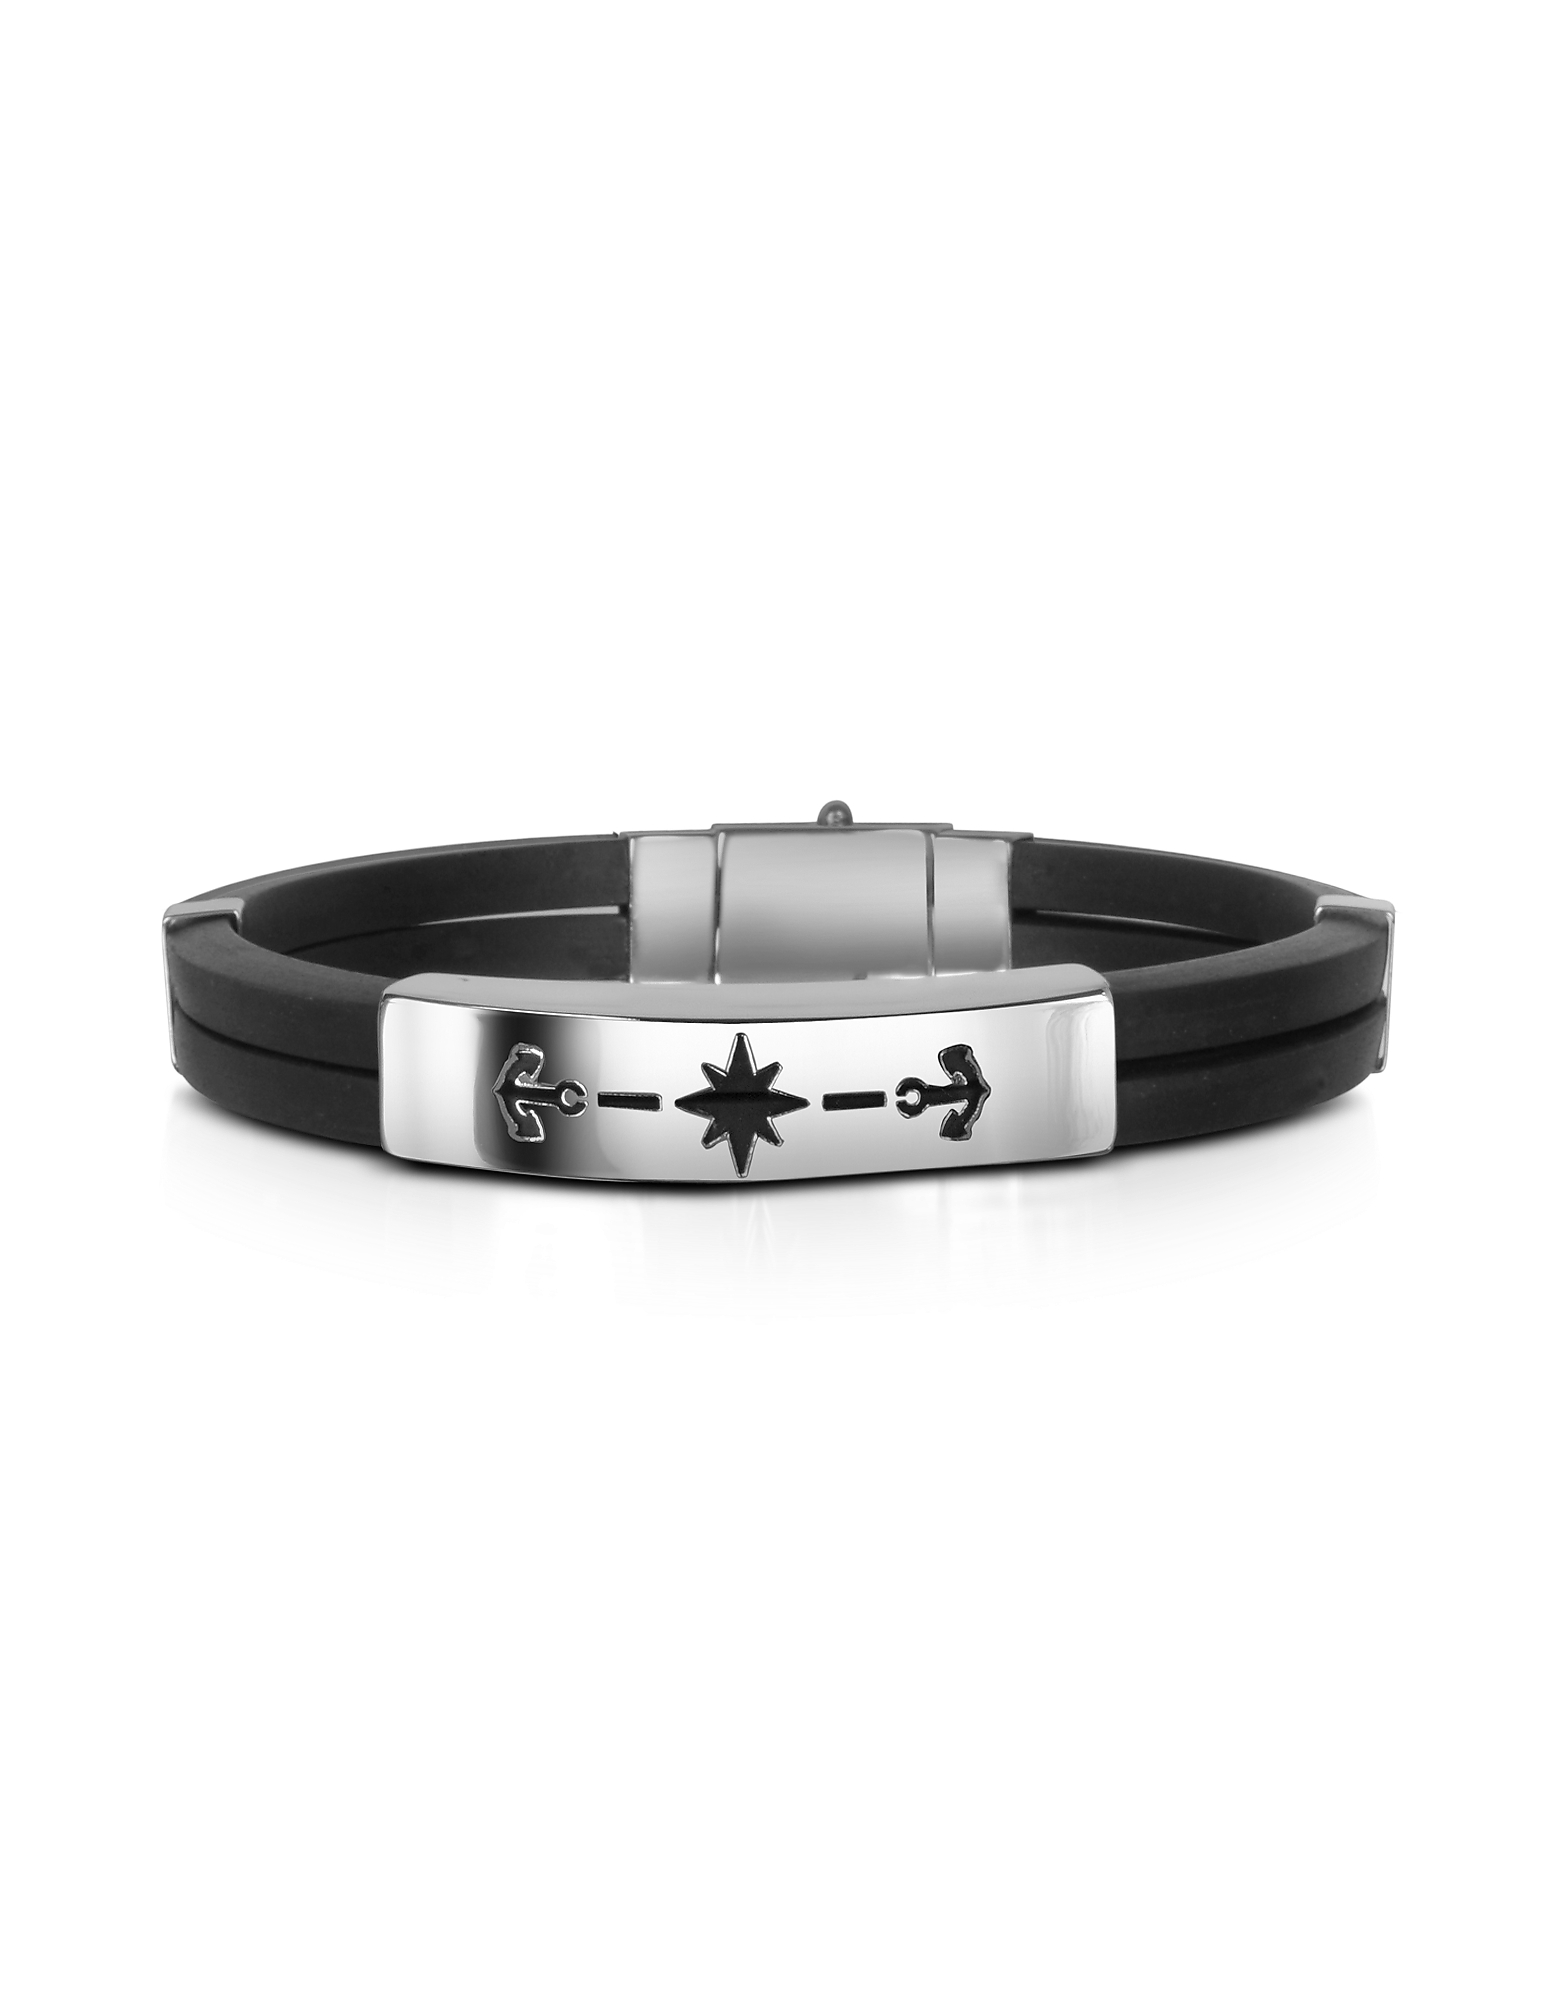 Forzieri Men's Bracelets, Men's Rubber and Stainless Steel Anchor Bracelet